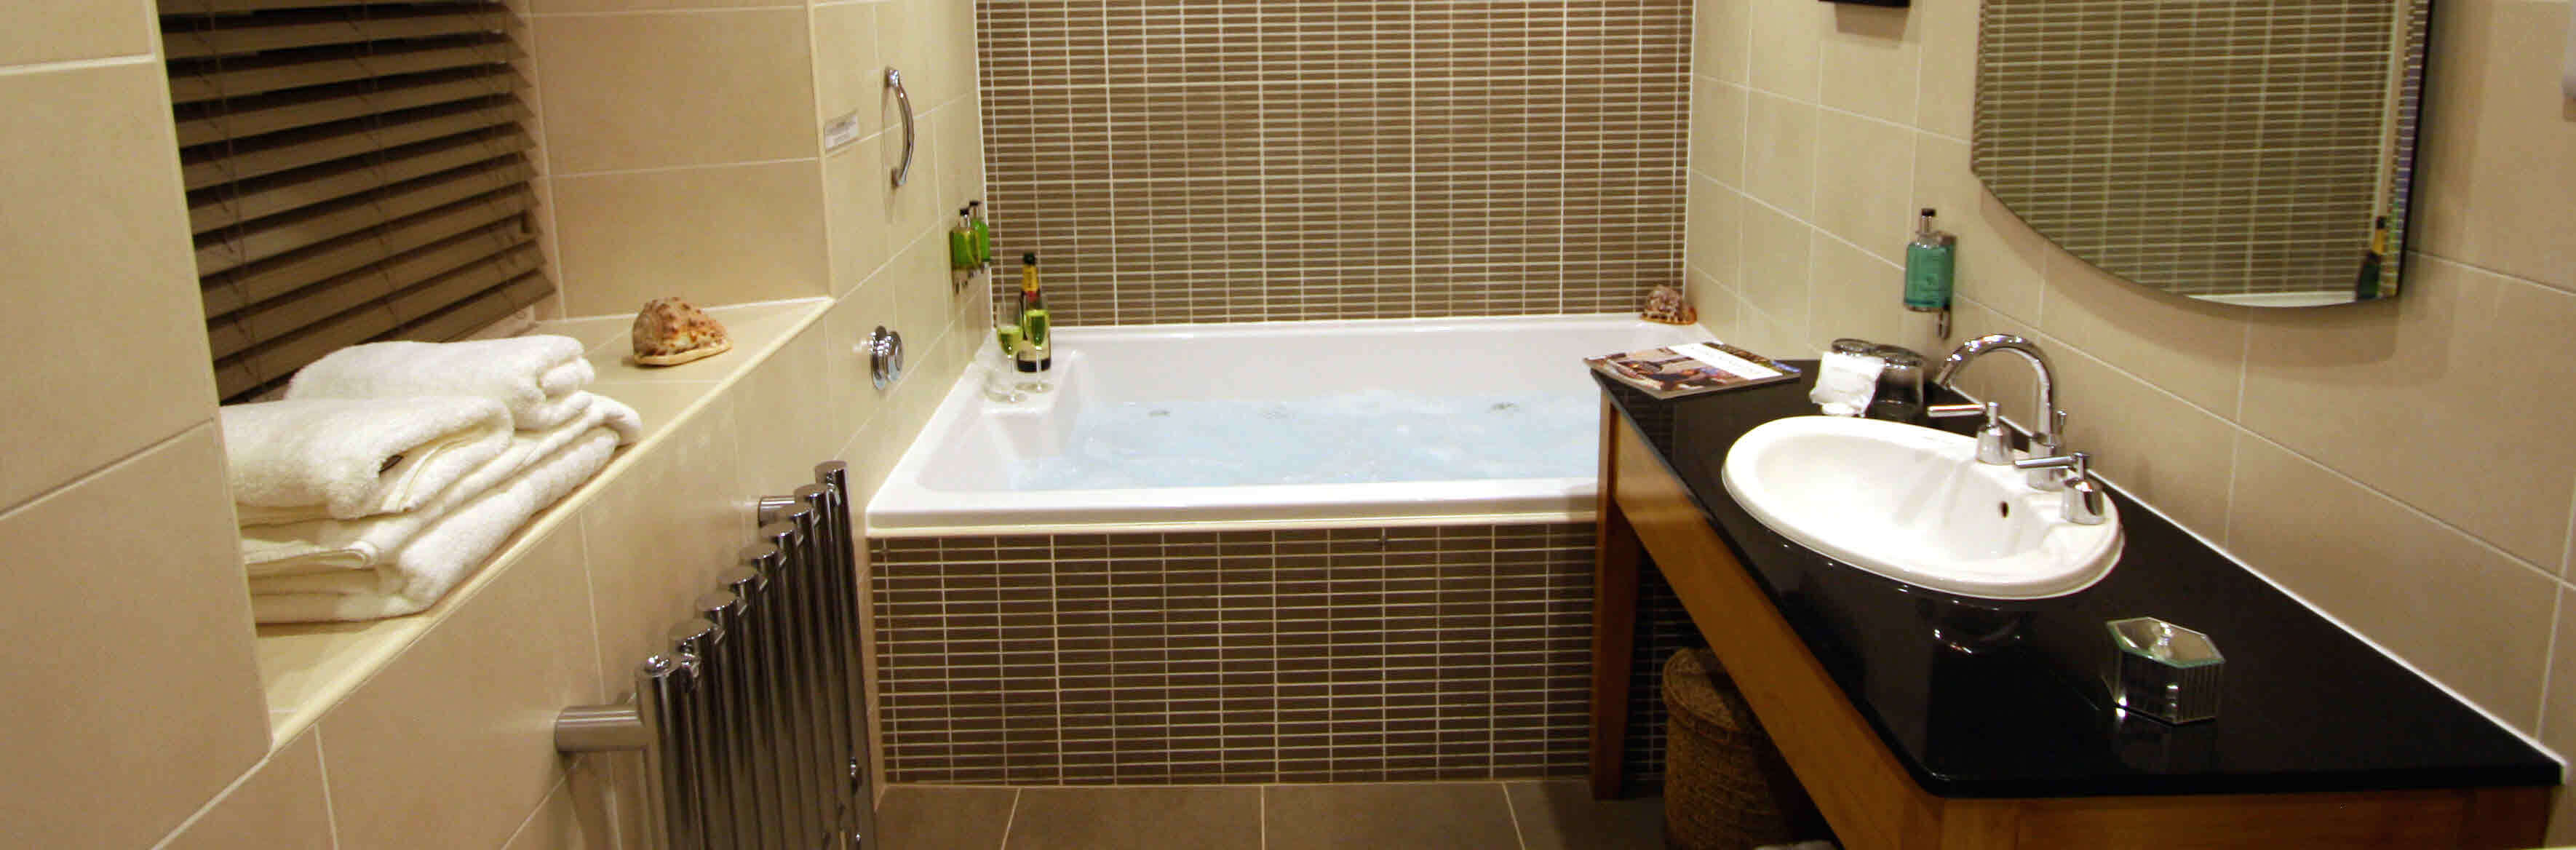 hotel bedrooms with en-suite jacuzzi